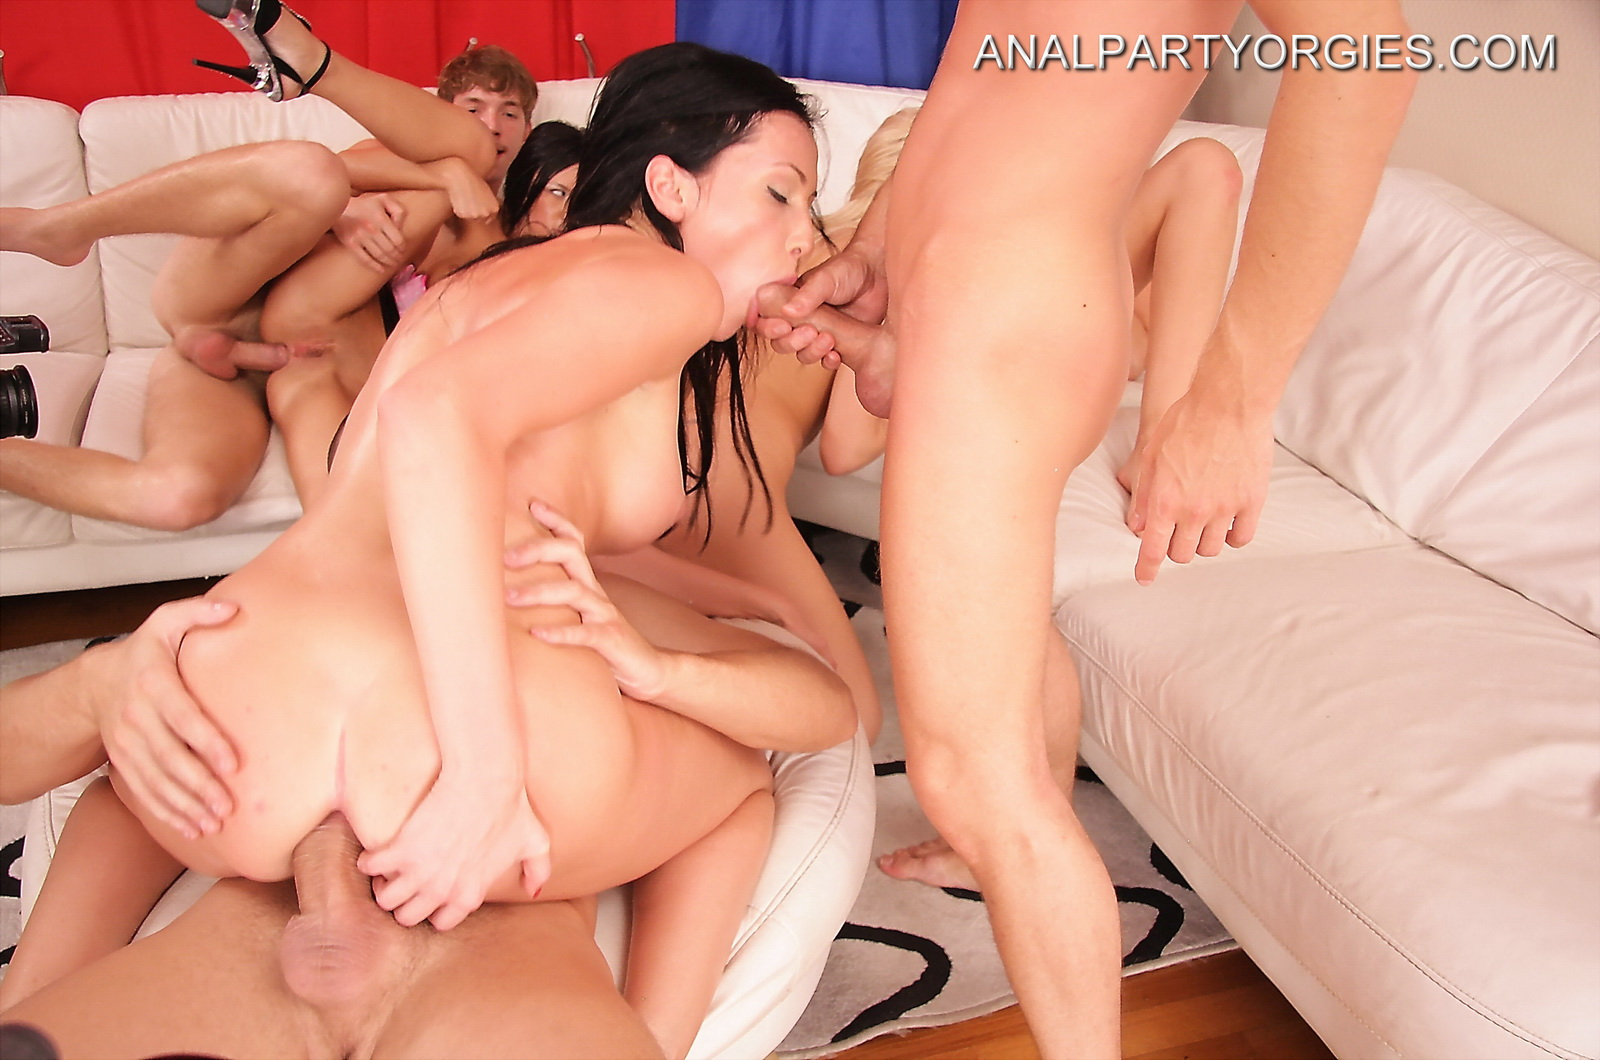 Anal party hd